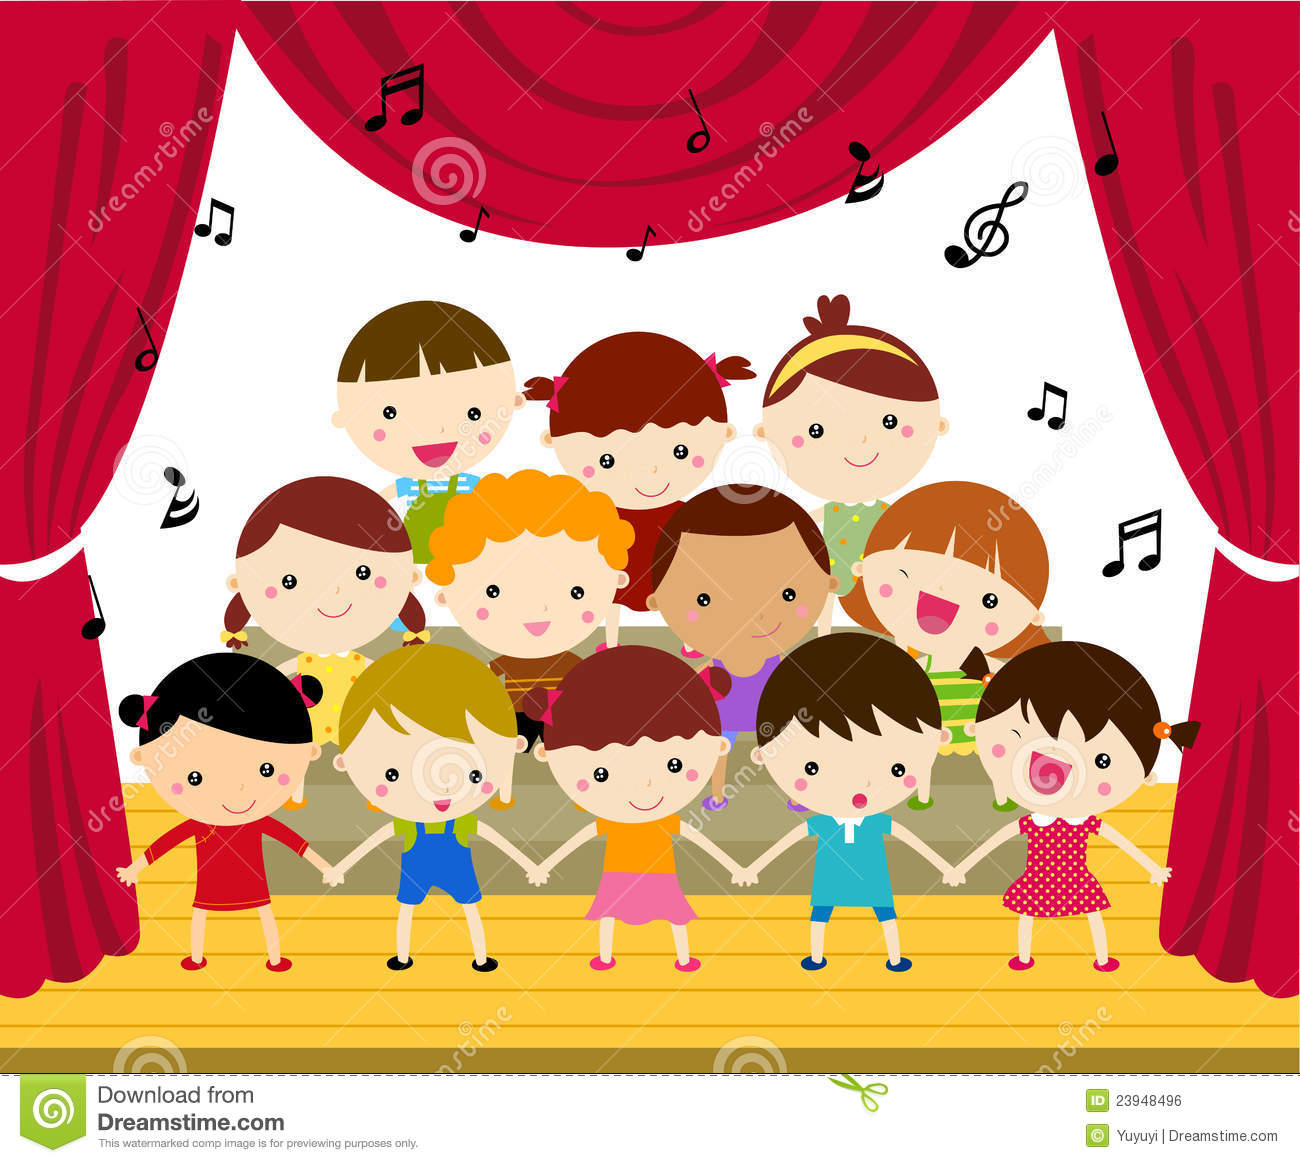 Stage performance clipart.